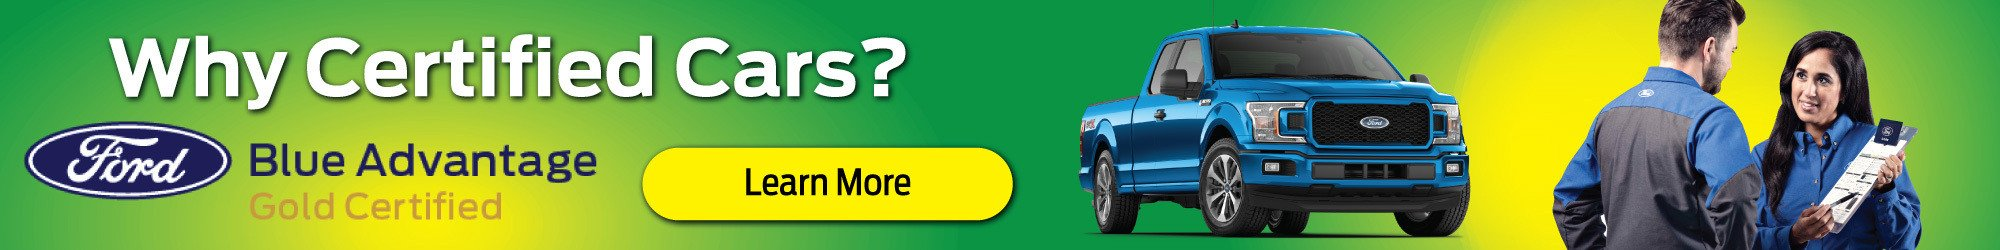 Mullinax Ford of West Palm Beach - Why Buy Certified Pre-owned?